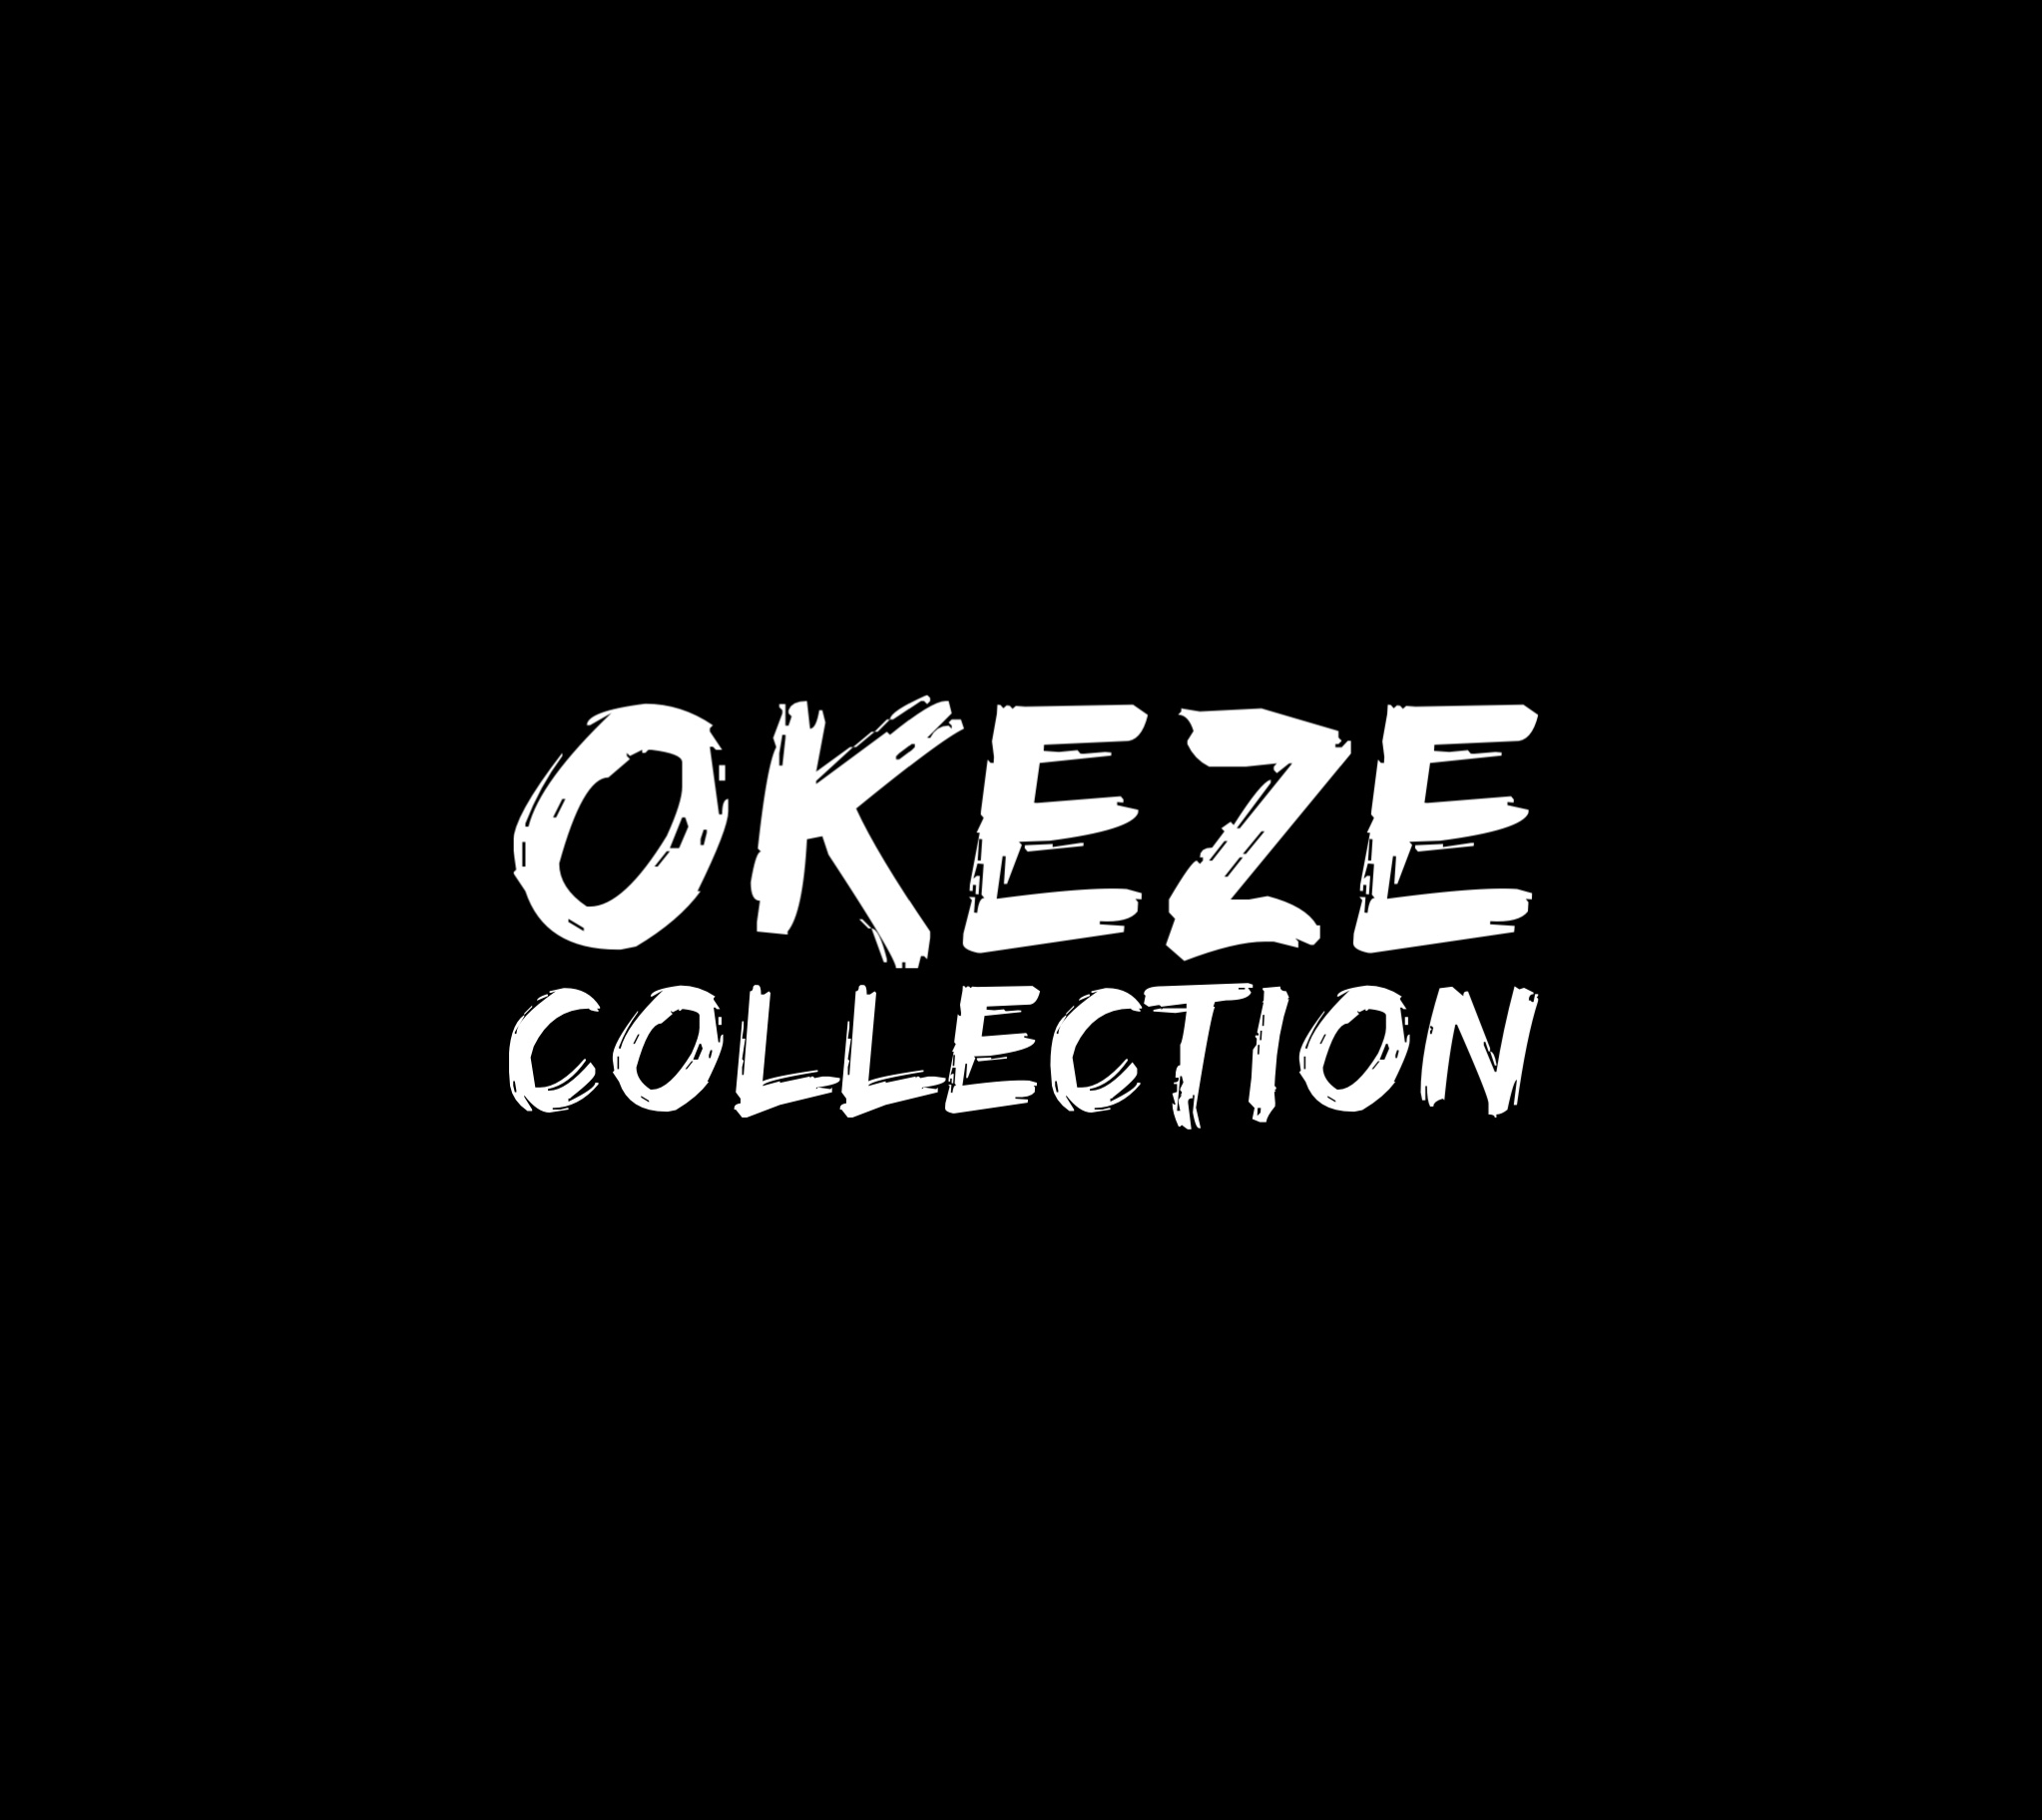 Okeze Collection